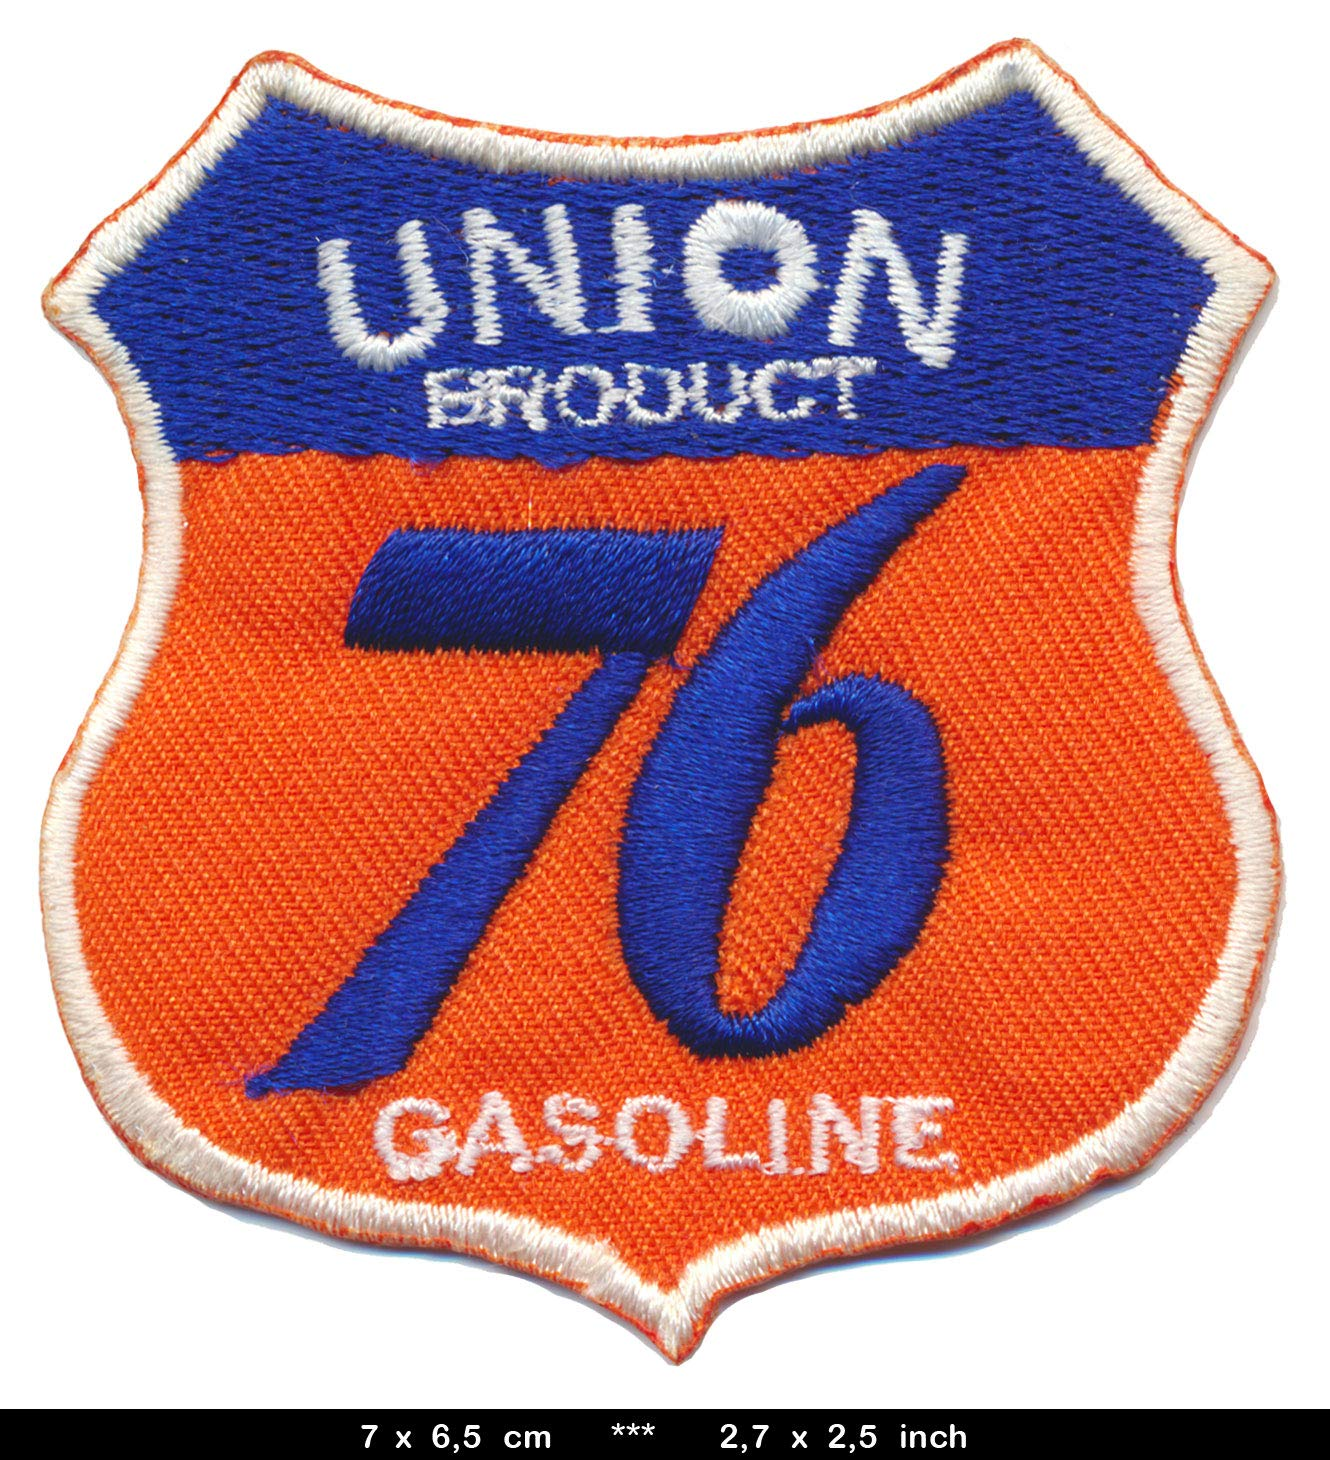 Royal Garment 76 Gasoline Patch Aufn/äher Racing Oil Motor/öl Motorsport USA